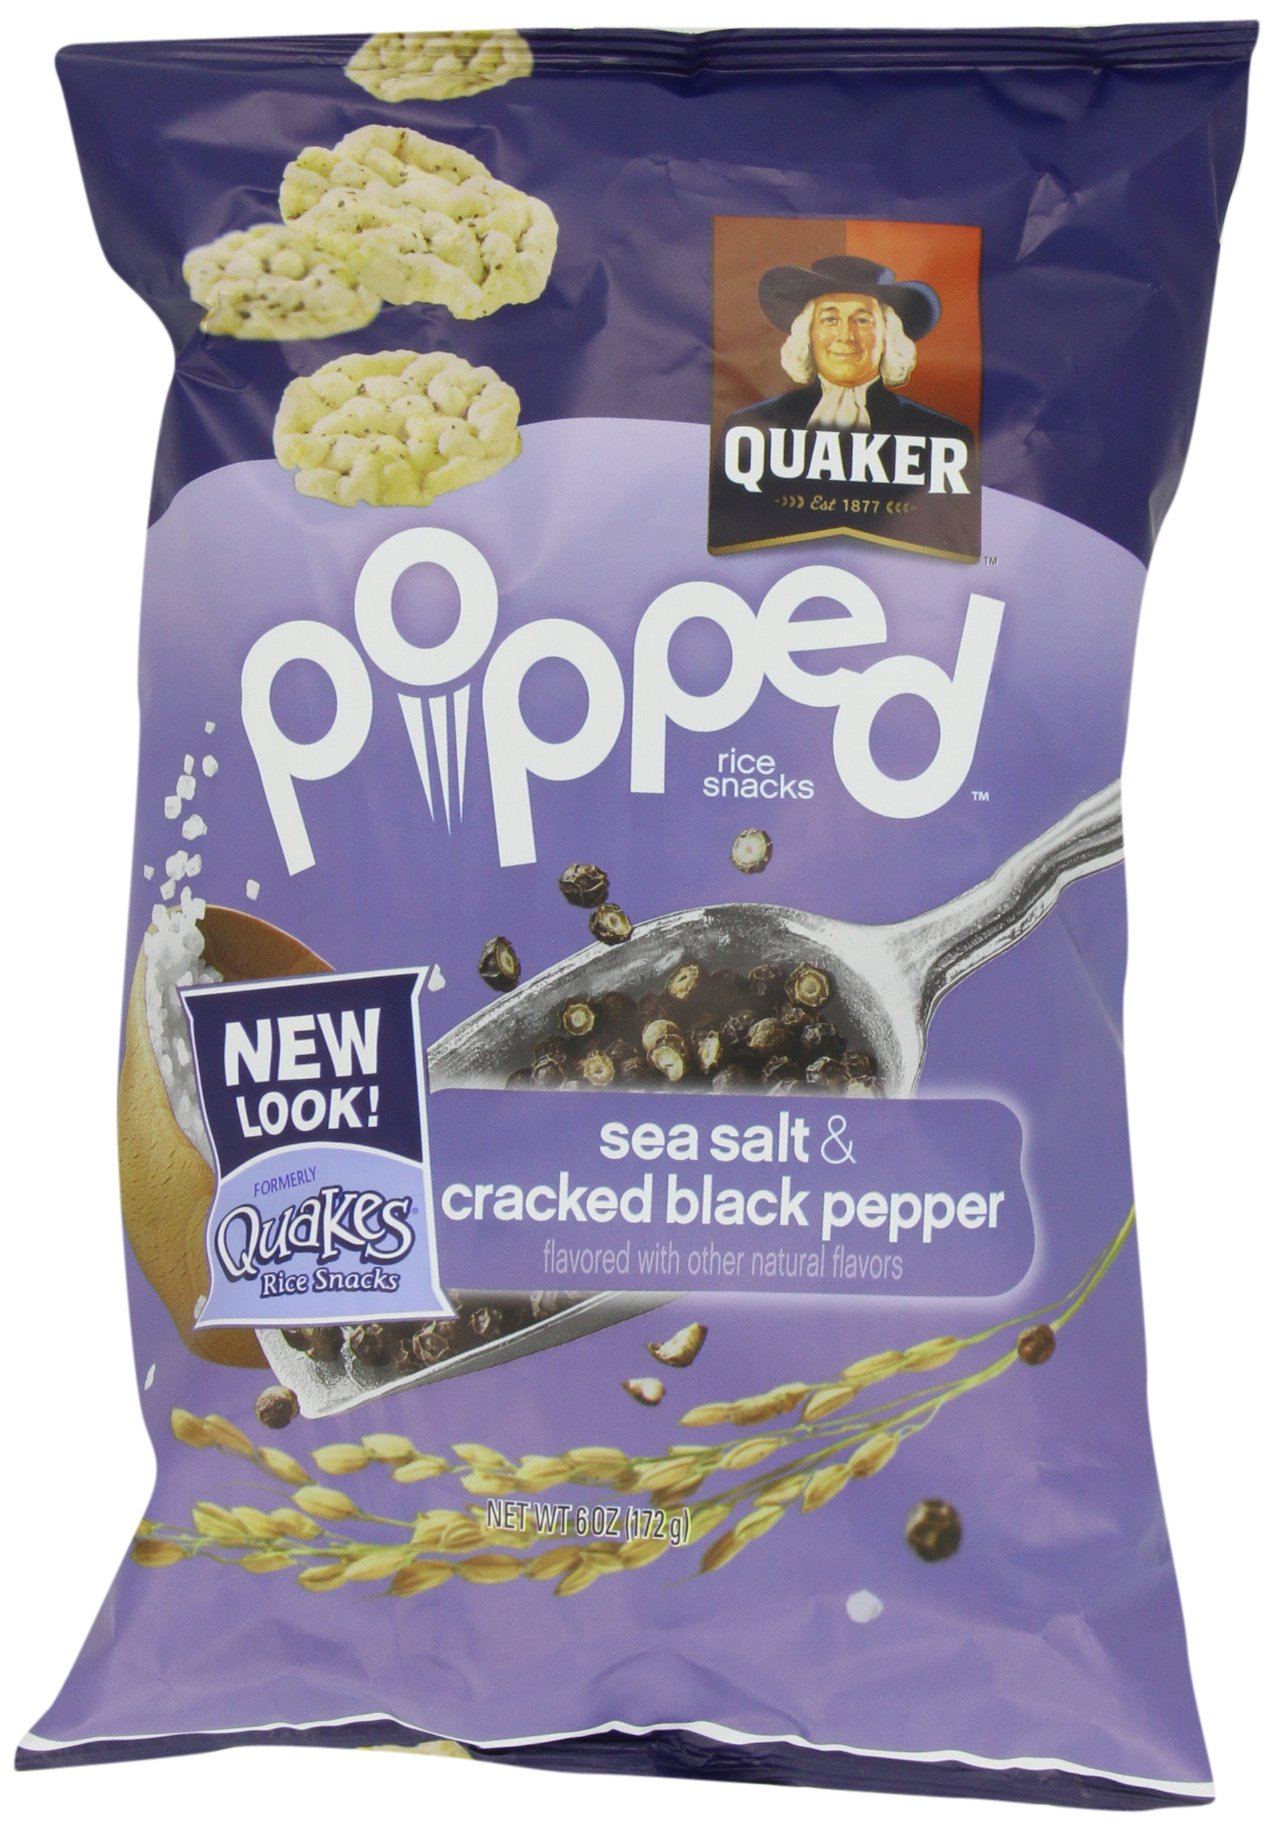 Quaker, Quakes Rice Snacks, Sea Salt and Cracked Black Pepper, 6 oz. (Pack of 4)